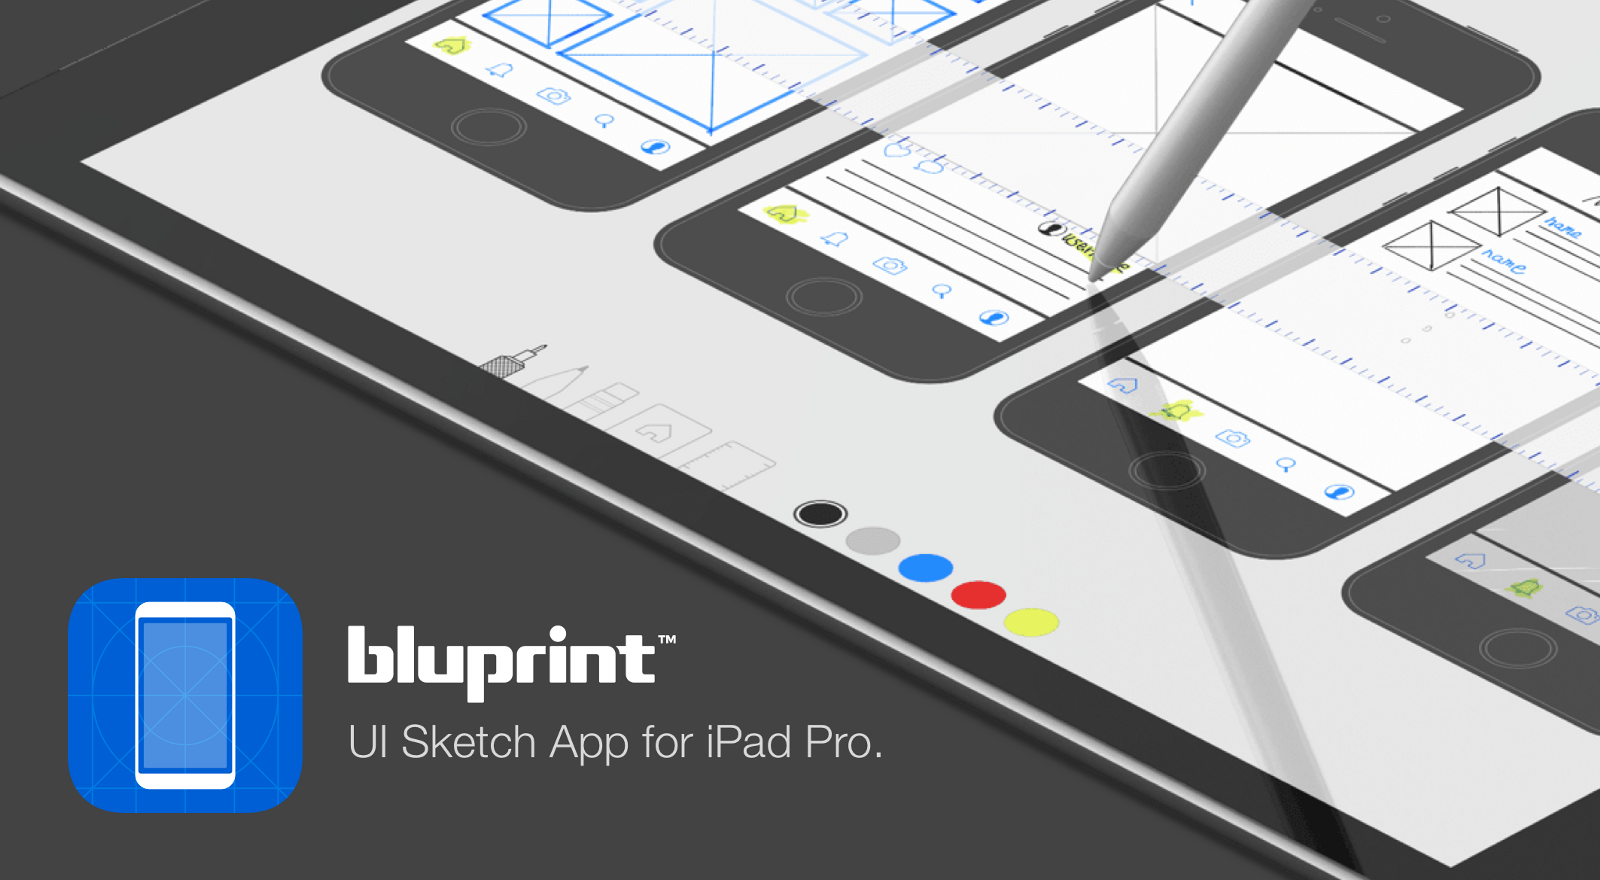 Meet bluprint a ui sketch app for ipad pro lsd lab